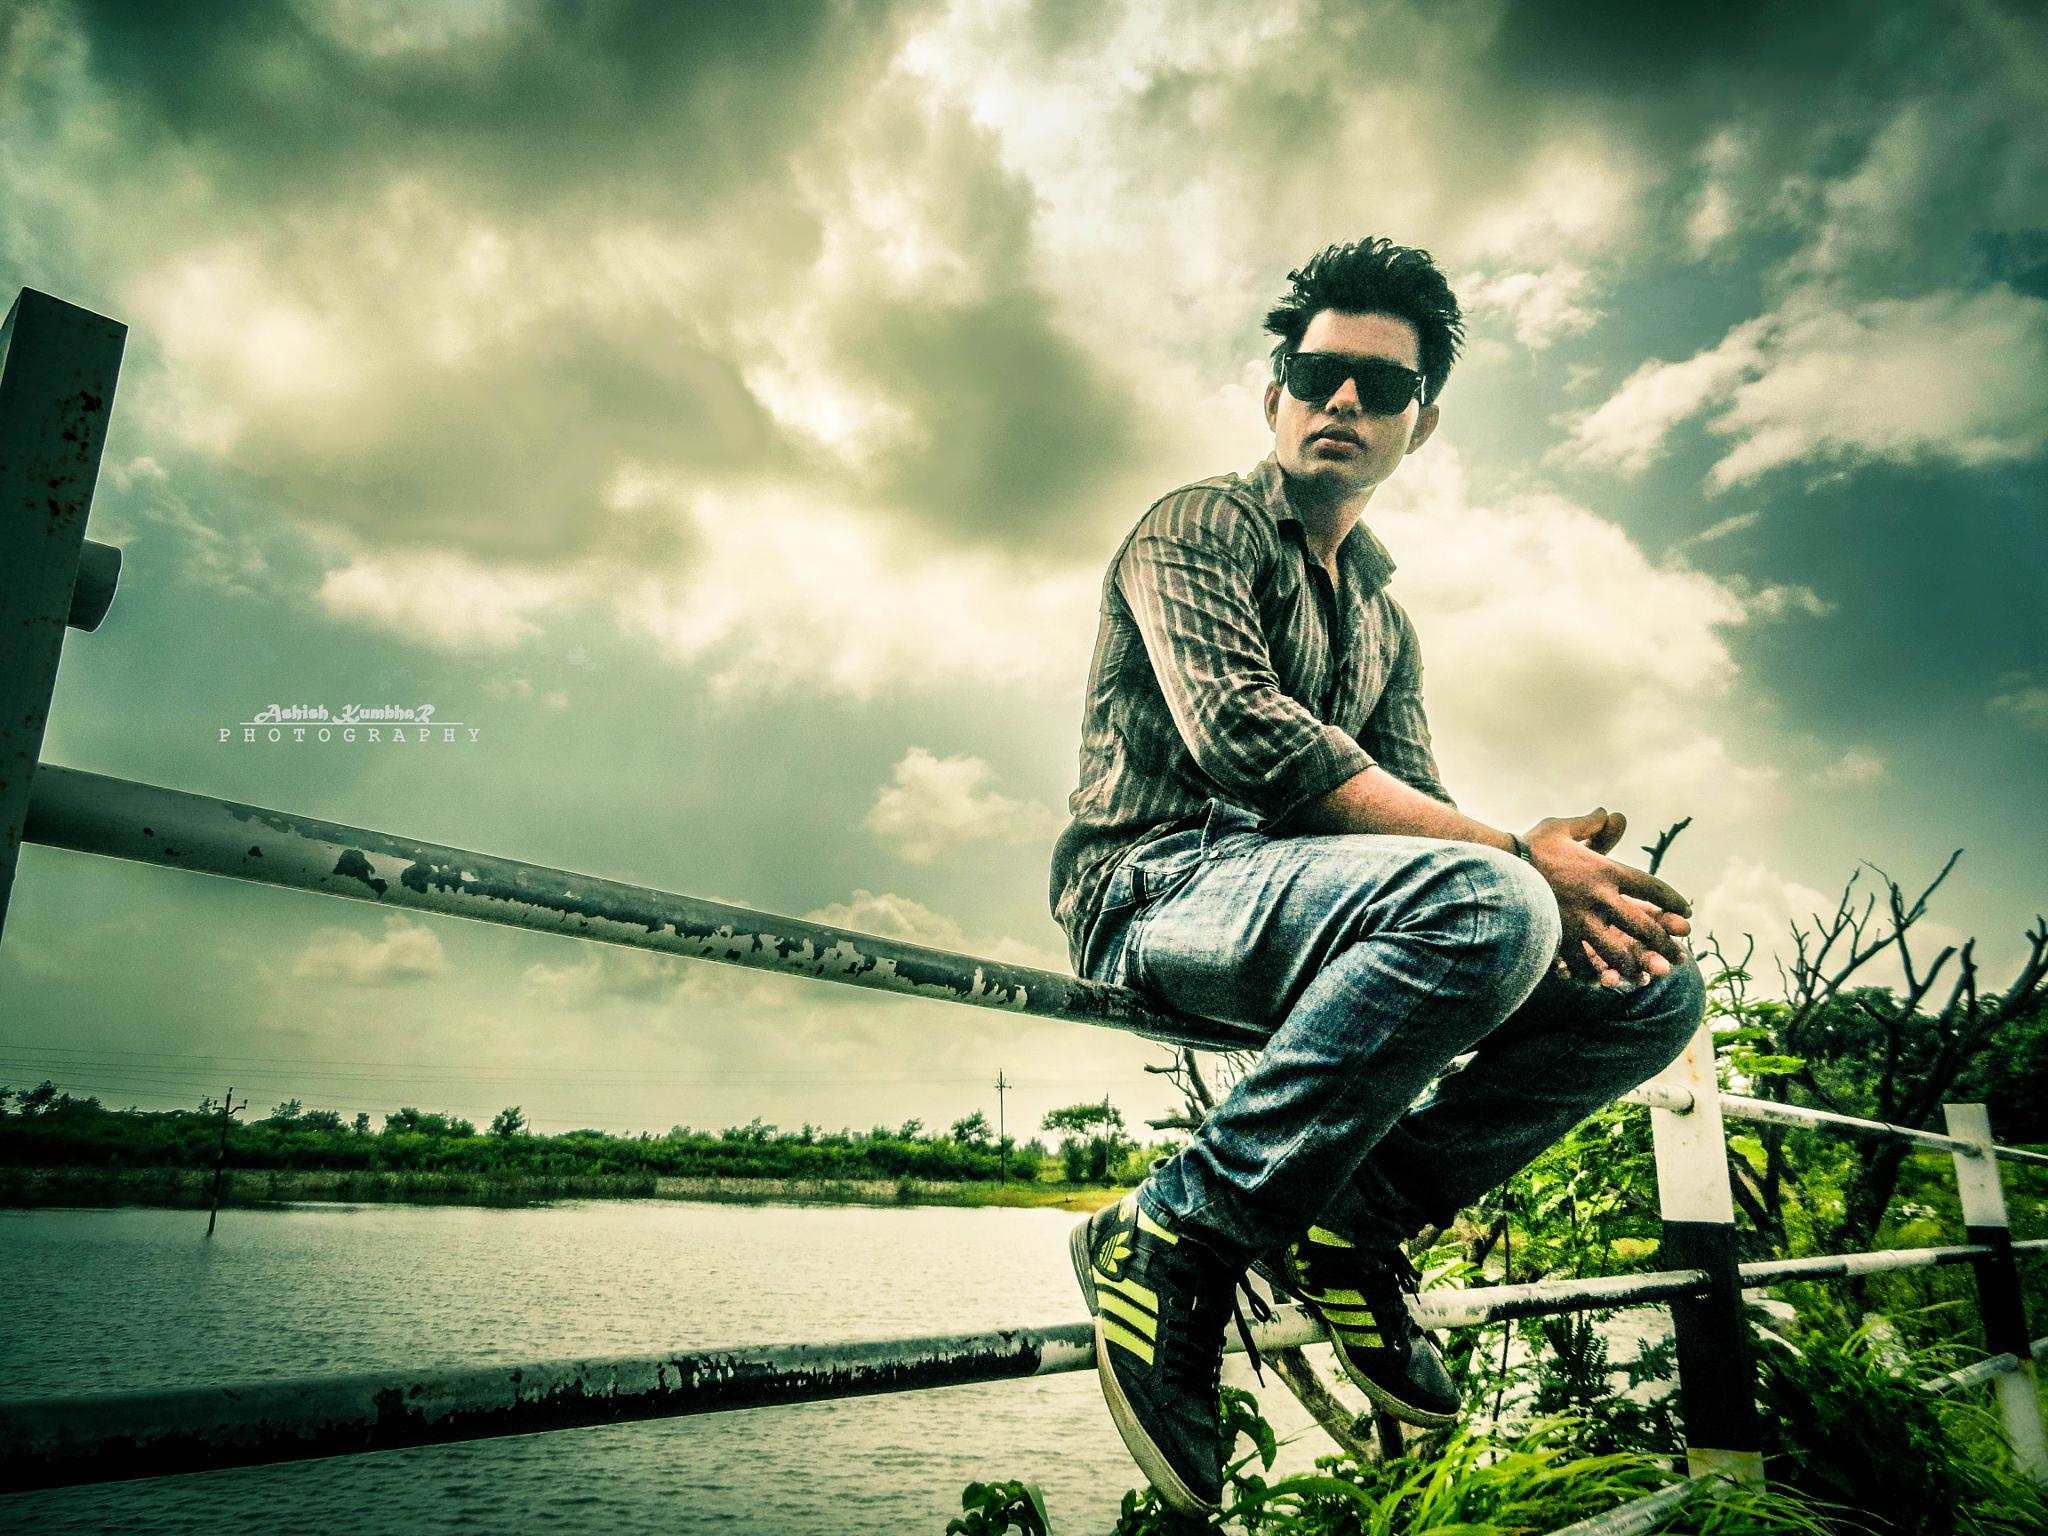 Attitude is a little thing that makes a big difference by Ashish Kumbhar